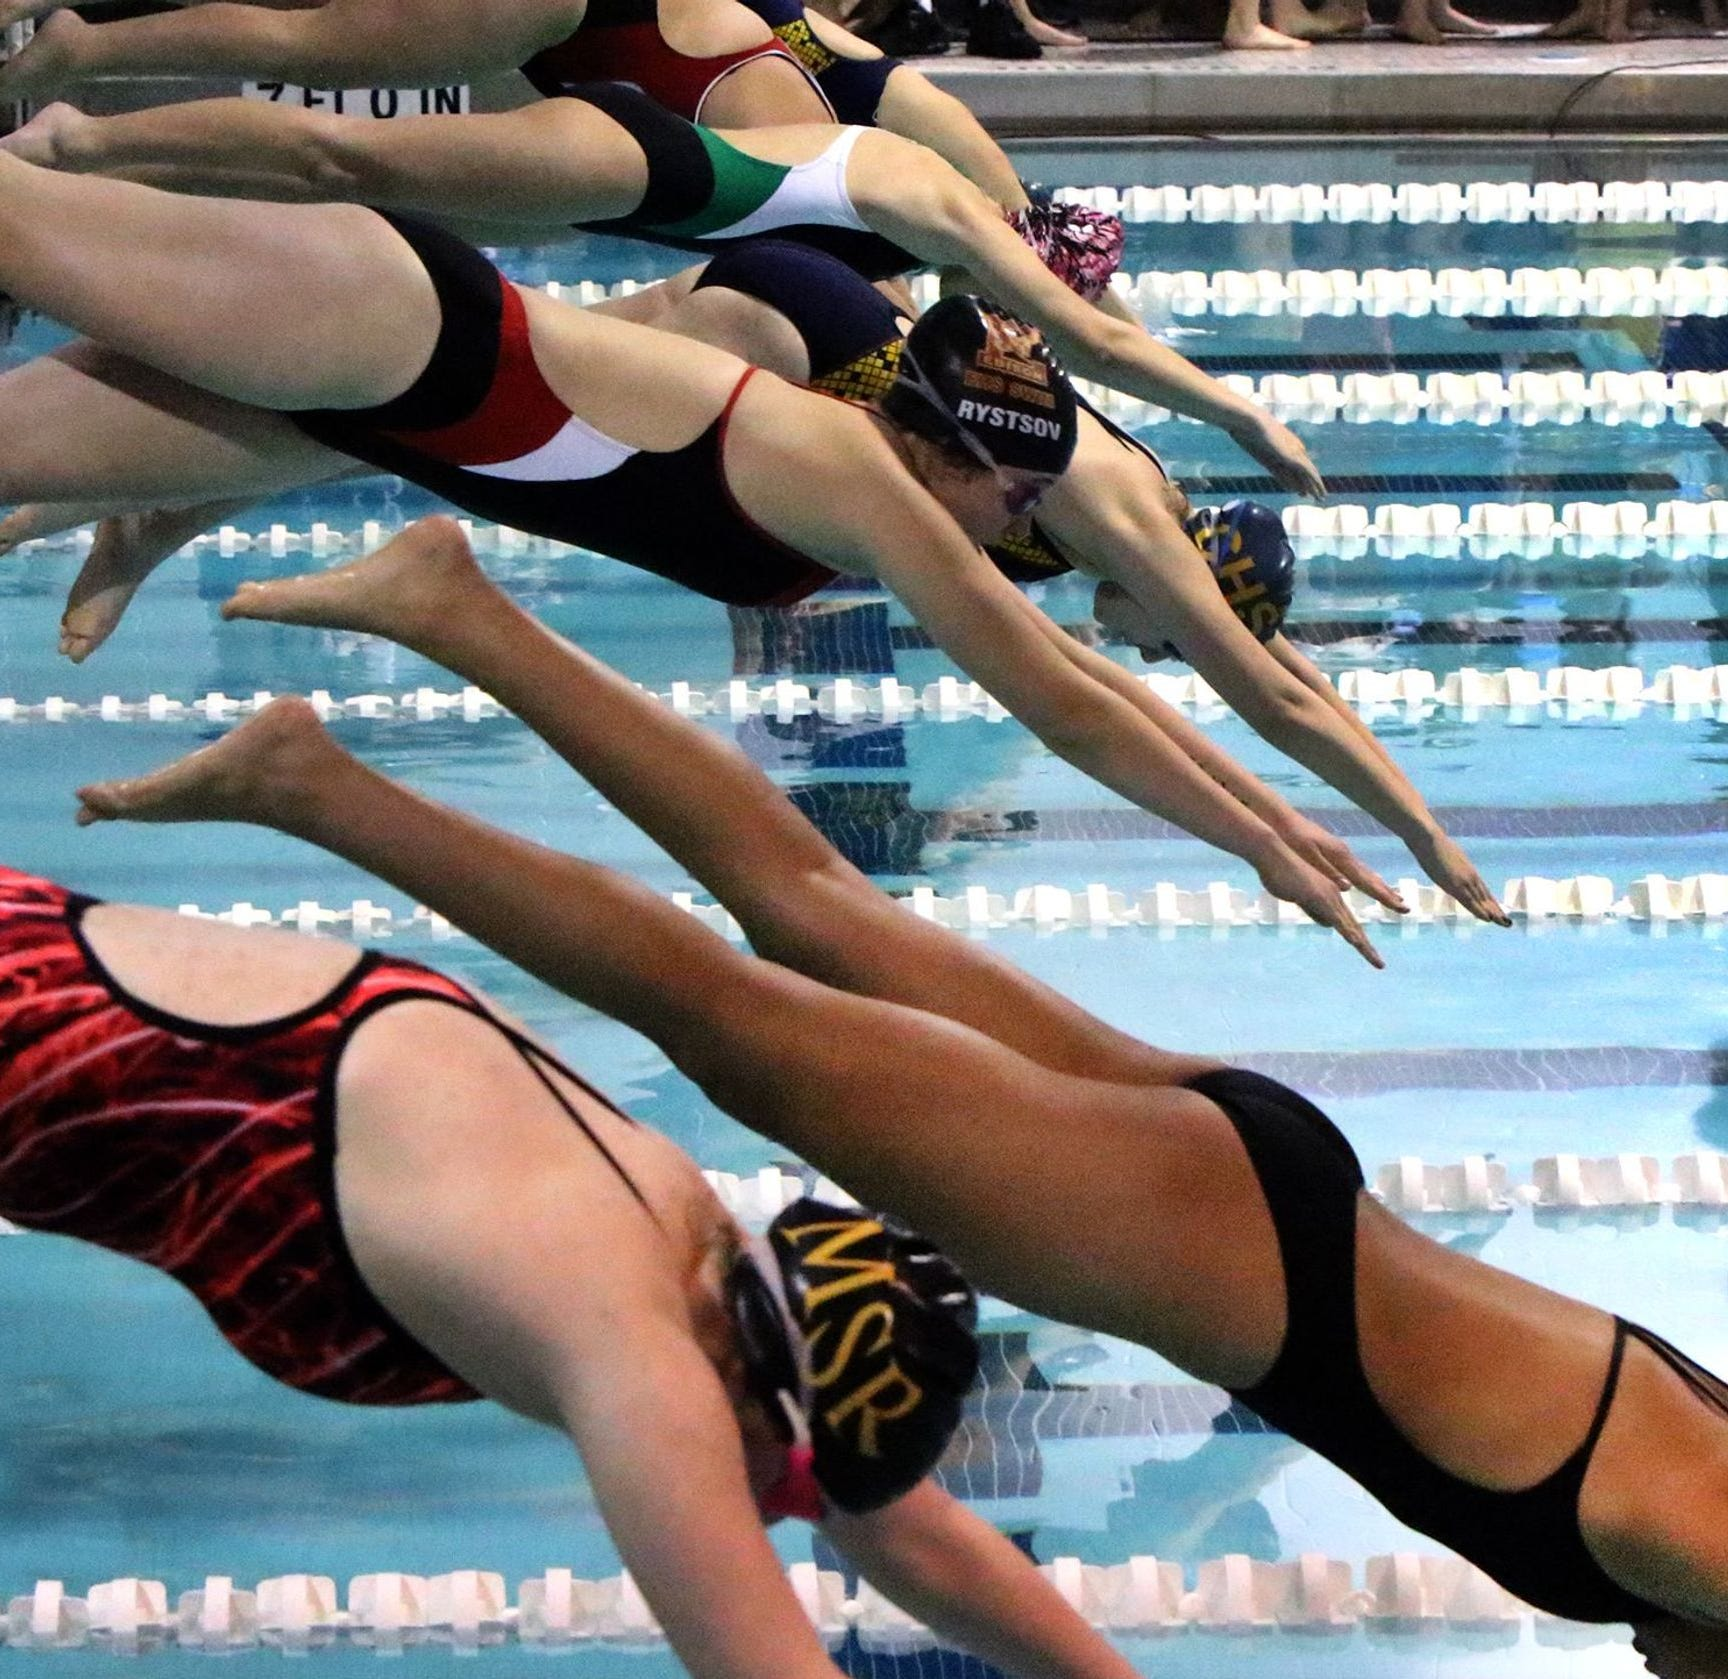 Start of the 200 Yard Freestyle at the GMC Girls Swimming Championships held at the Perth Amboy YMCA Friday January 30, 2015